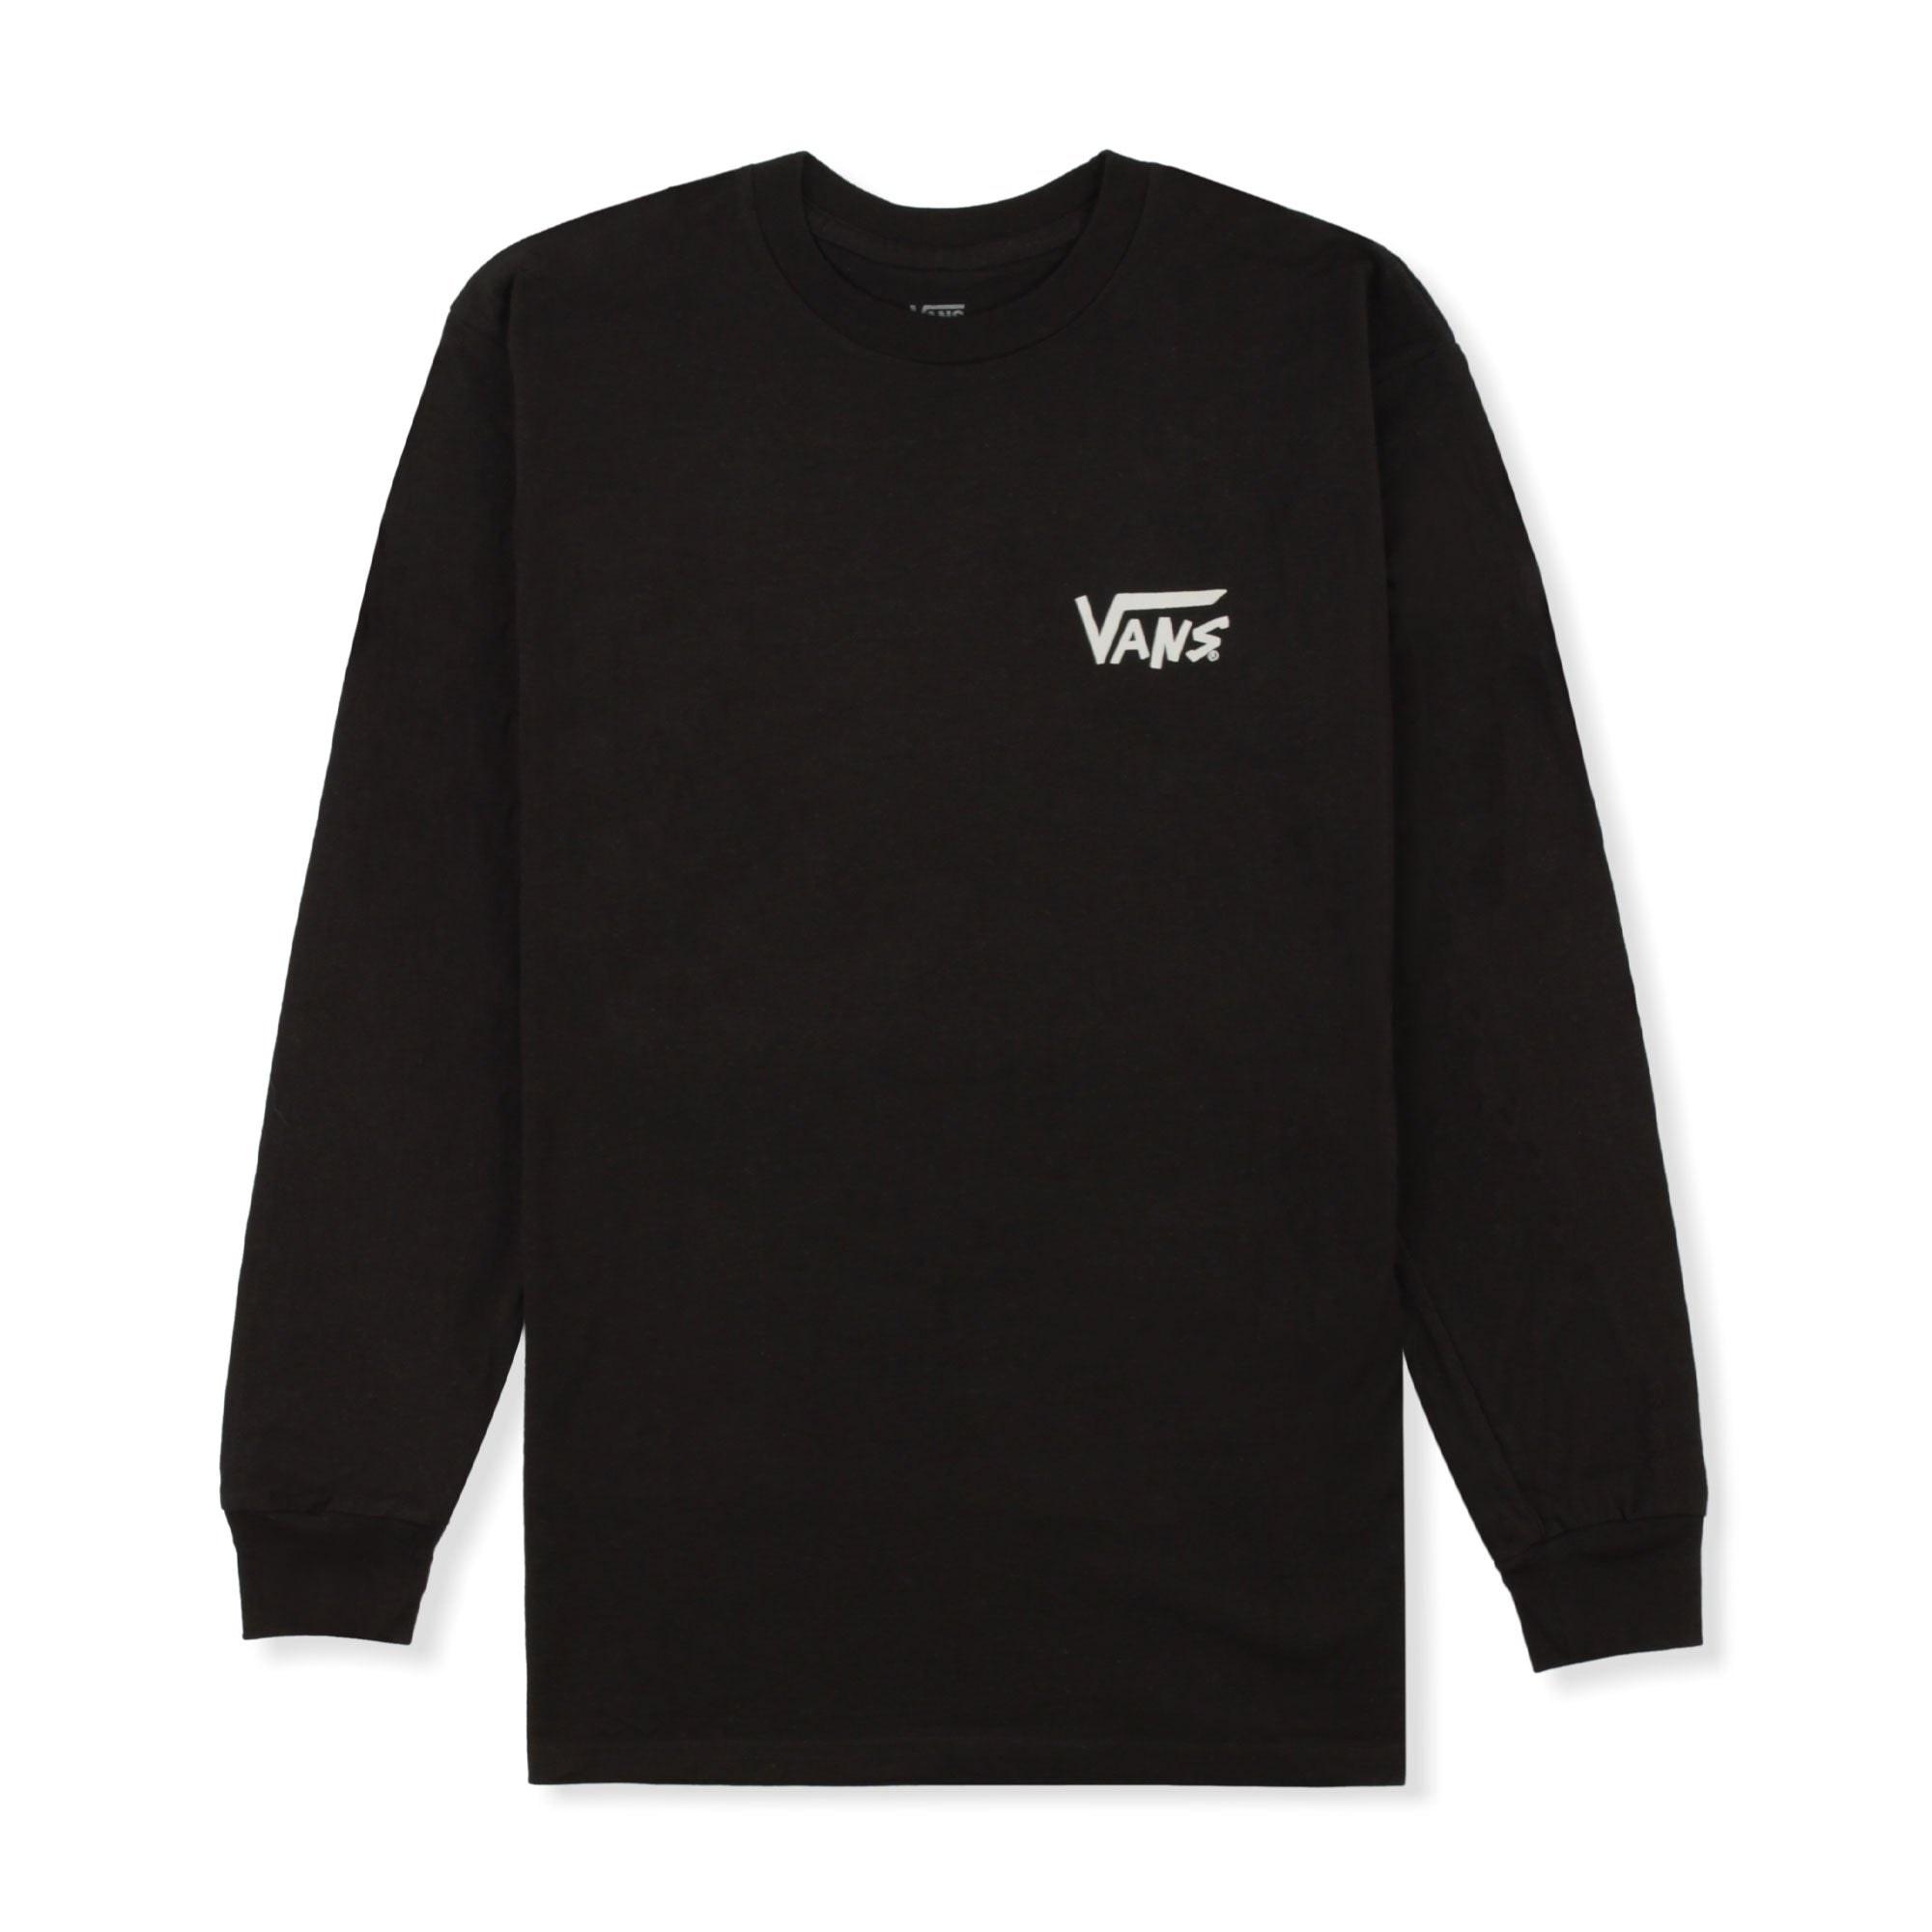 Vans X AA Hockey Longsleeve Tee Product Photo #1